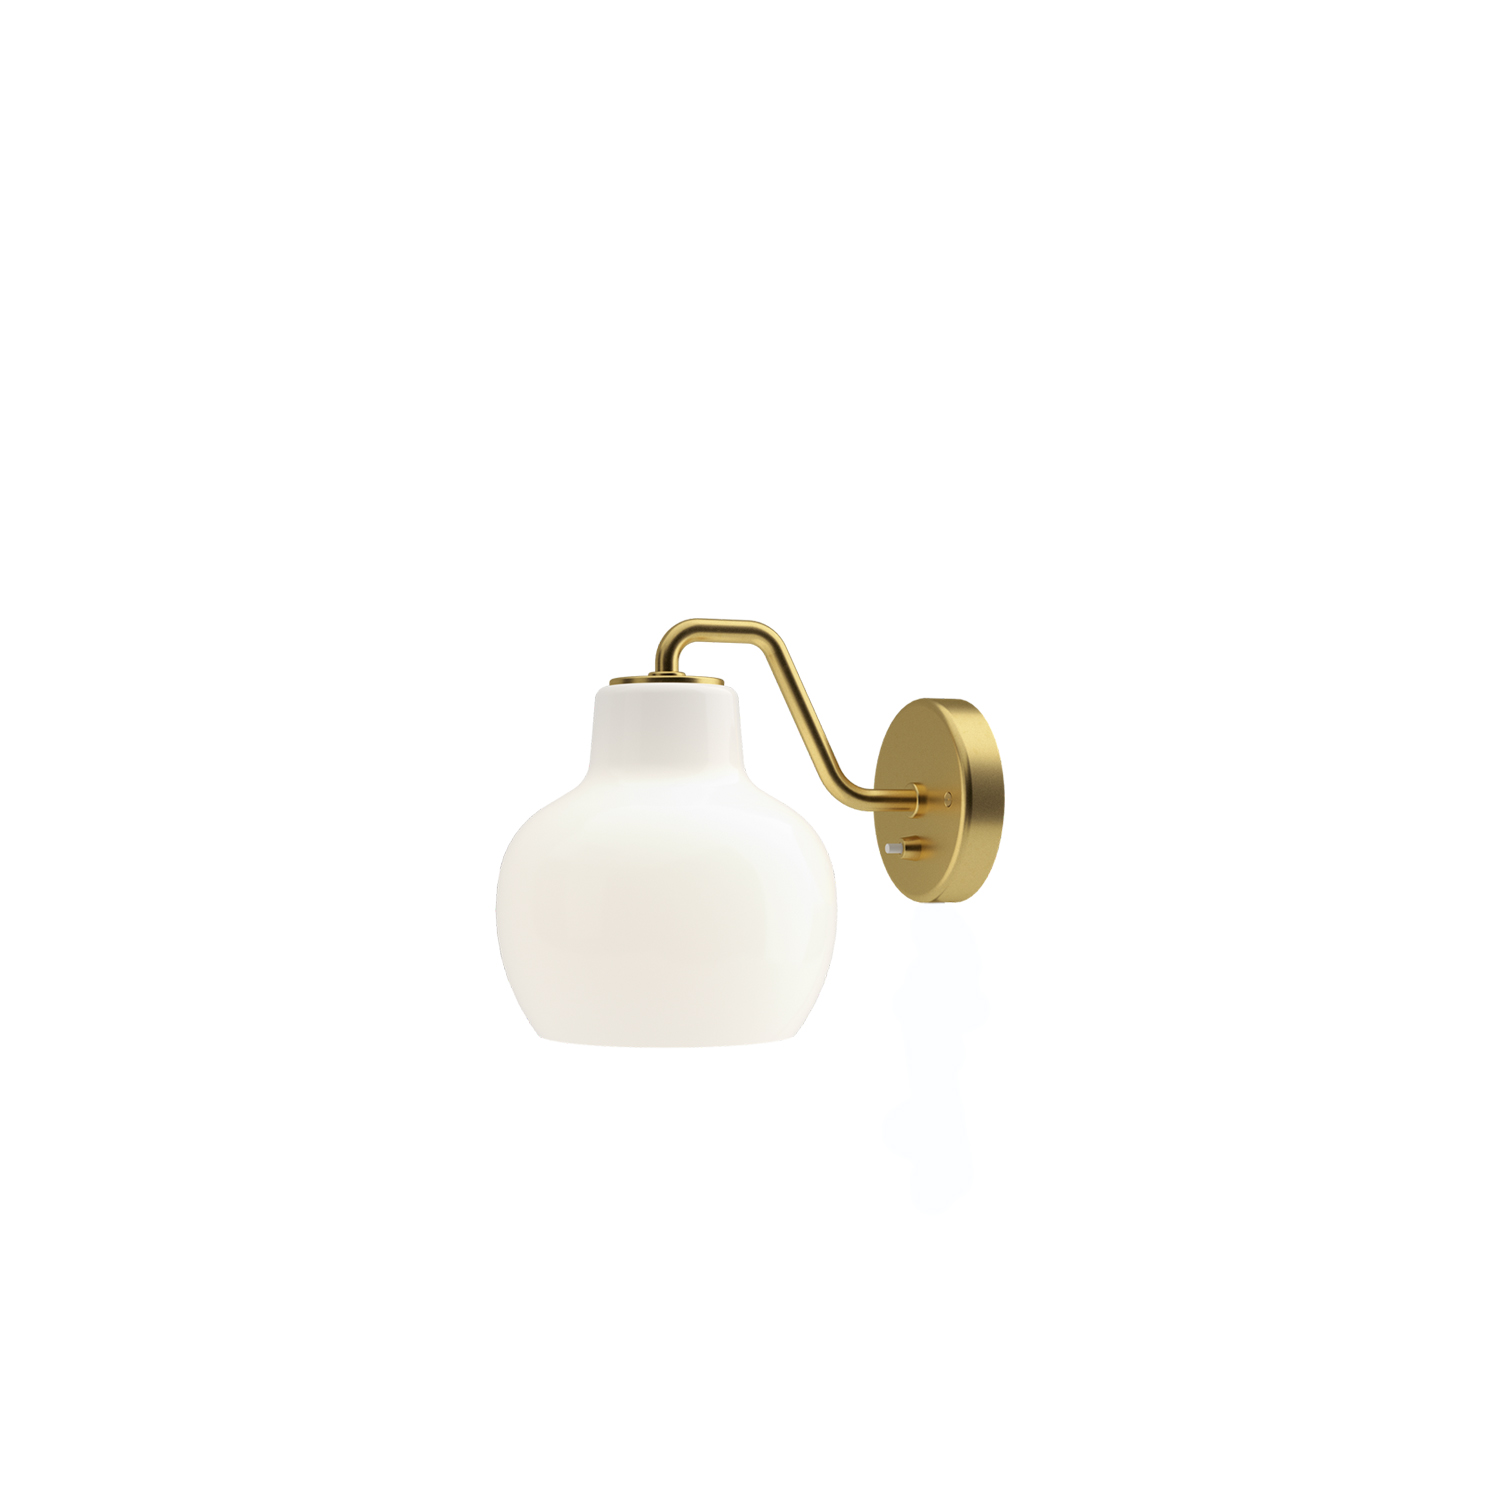 VL Ring Crown Wall Light - The wall lampt emits light directed primarily downwards. The opal glass provides a comfortable and uniform illumination of the area around the fixture.  | Matter of Stuff